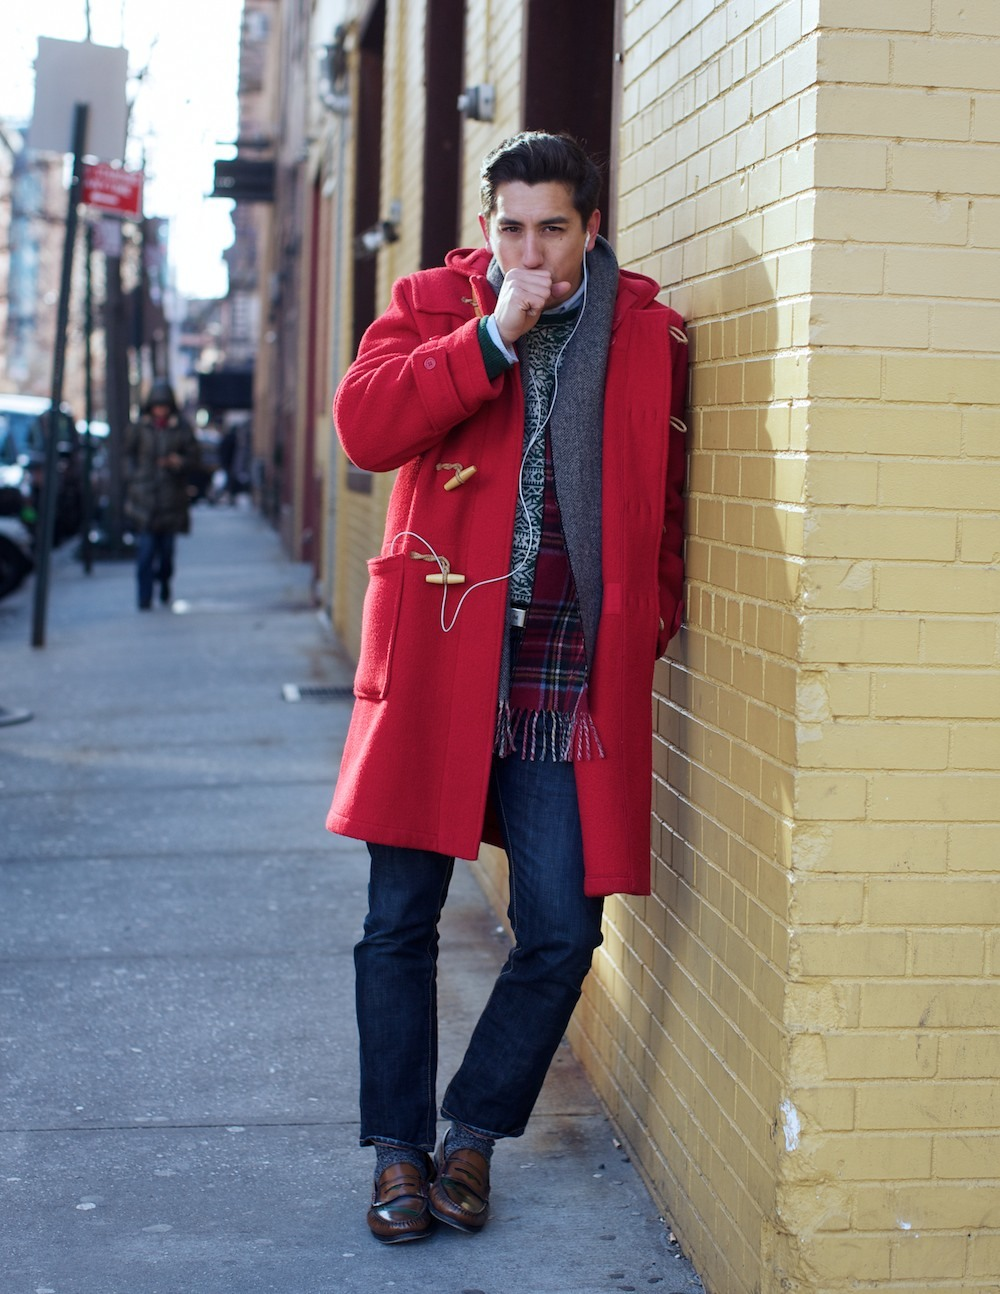 Duffle Coat | Men's Fashion